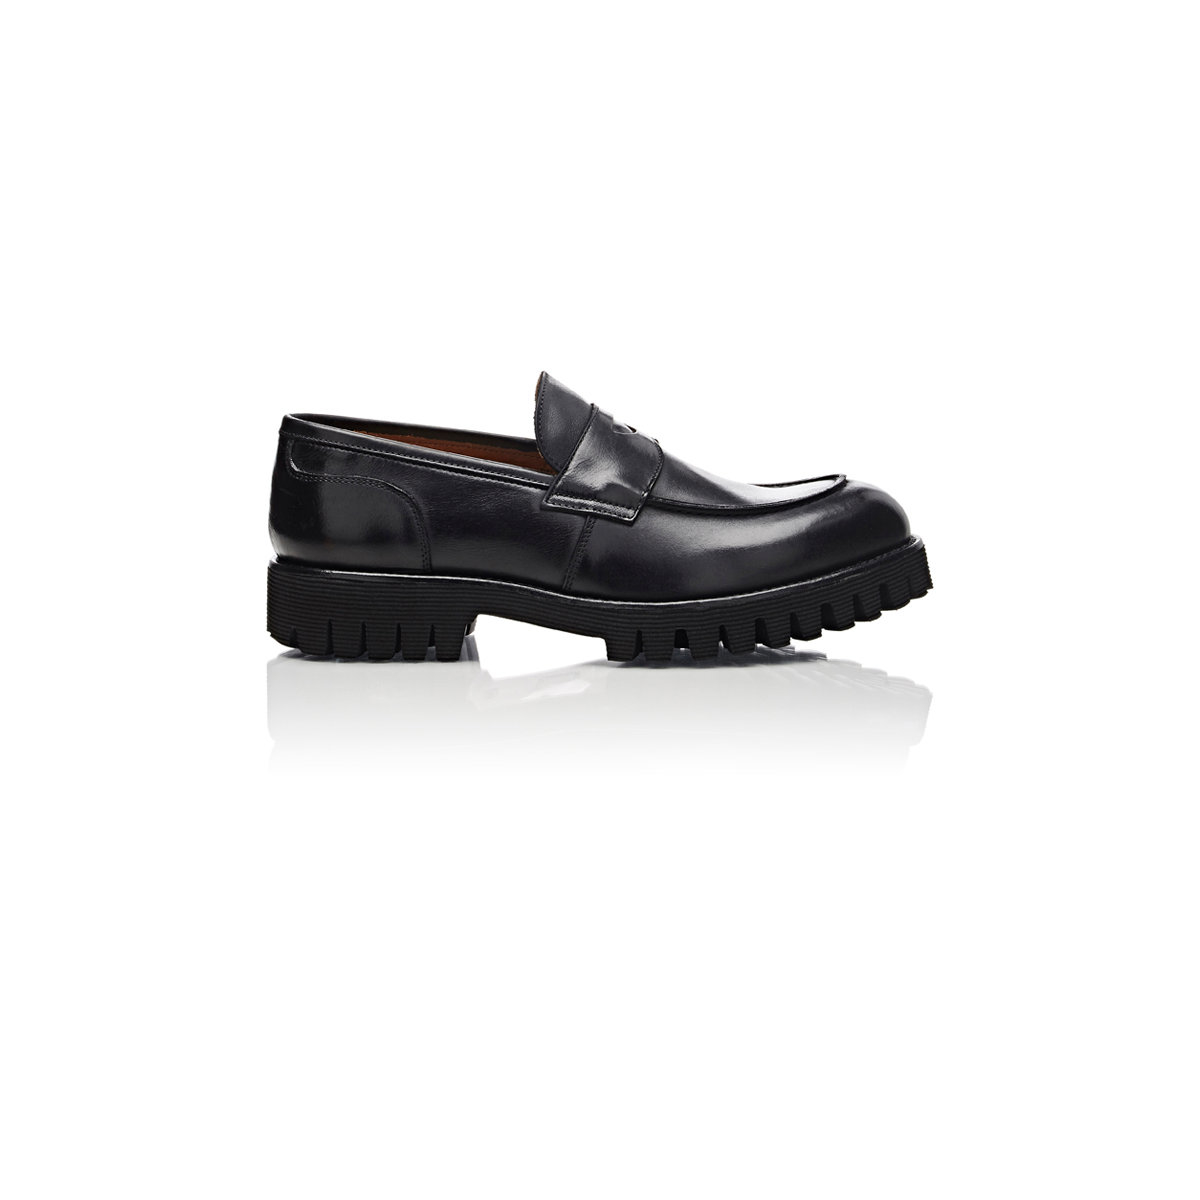 fb9134d1bff63 Gallery. Previously sold at: Barneys Warehouse · Men's Penny Loafers ...